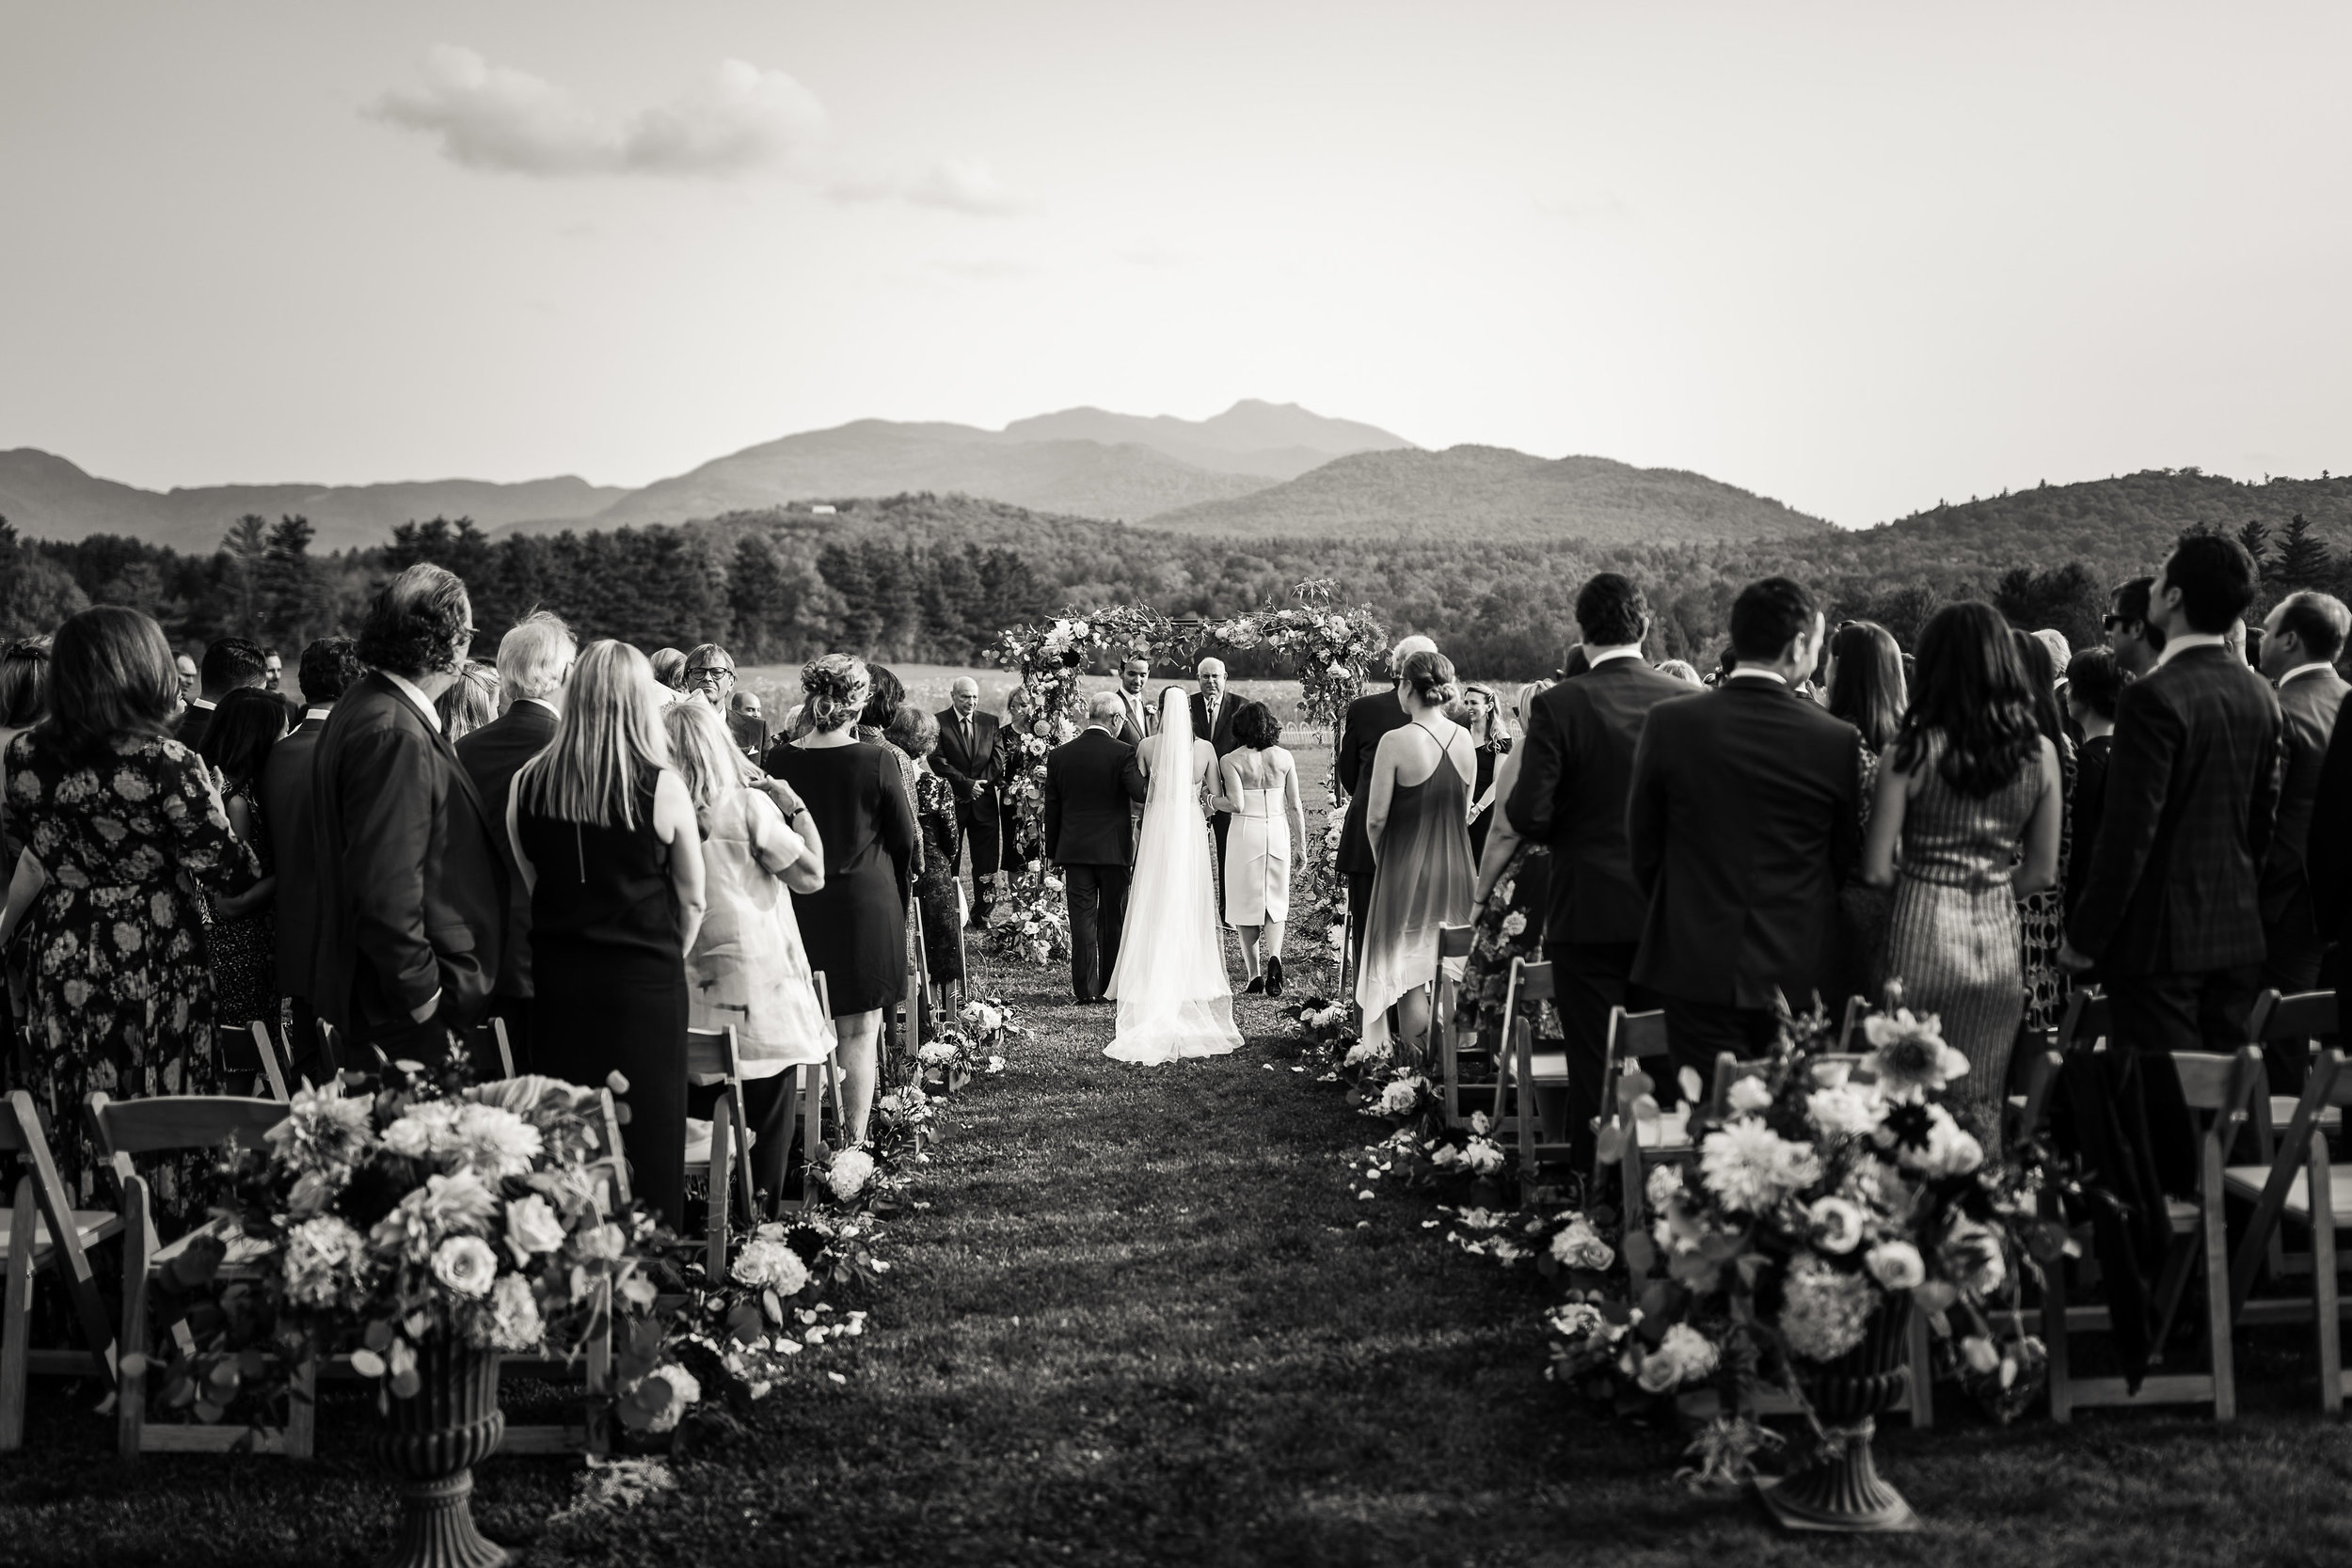 A stunning bride, stunning ceremony and stunning backdrop at The Barn at Smugglers' Notch. The perfect location for your Stowe Wedding. Image:  Jag Studios